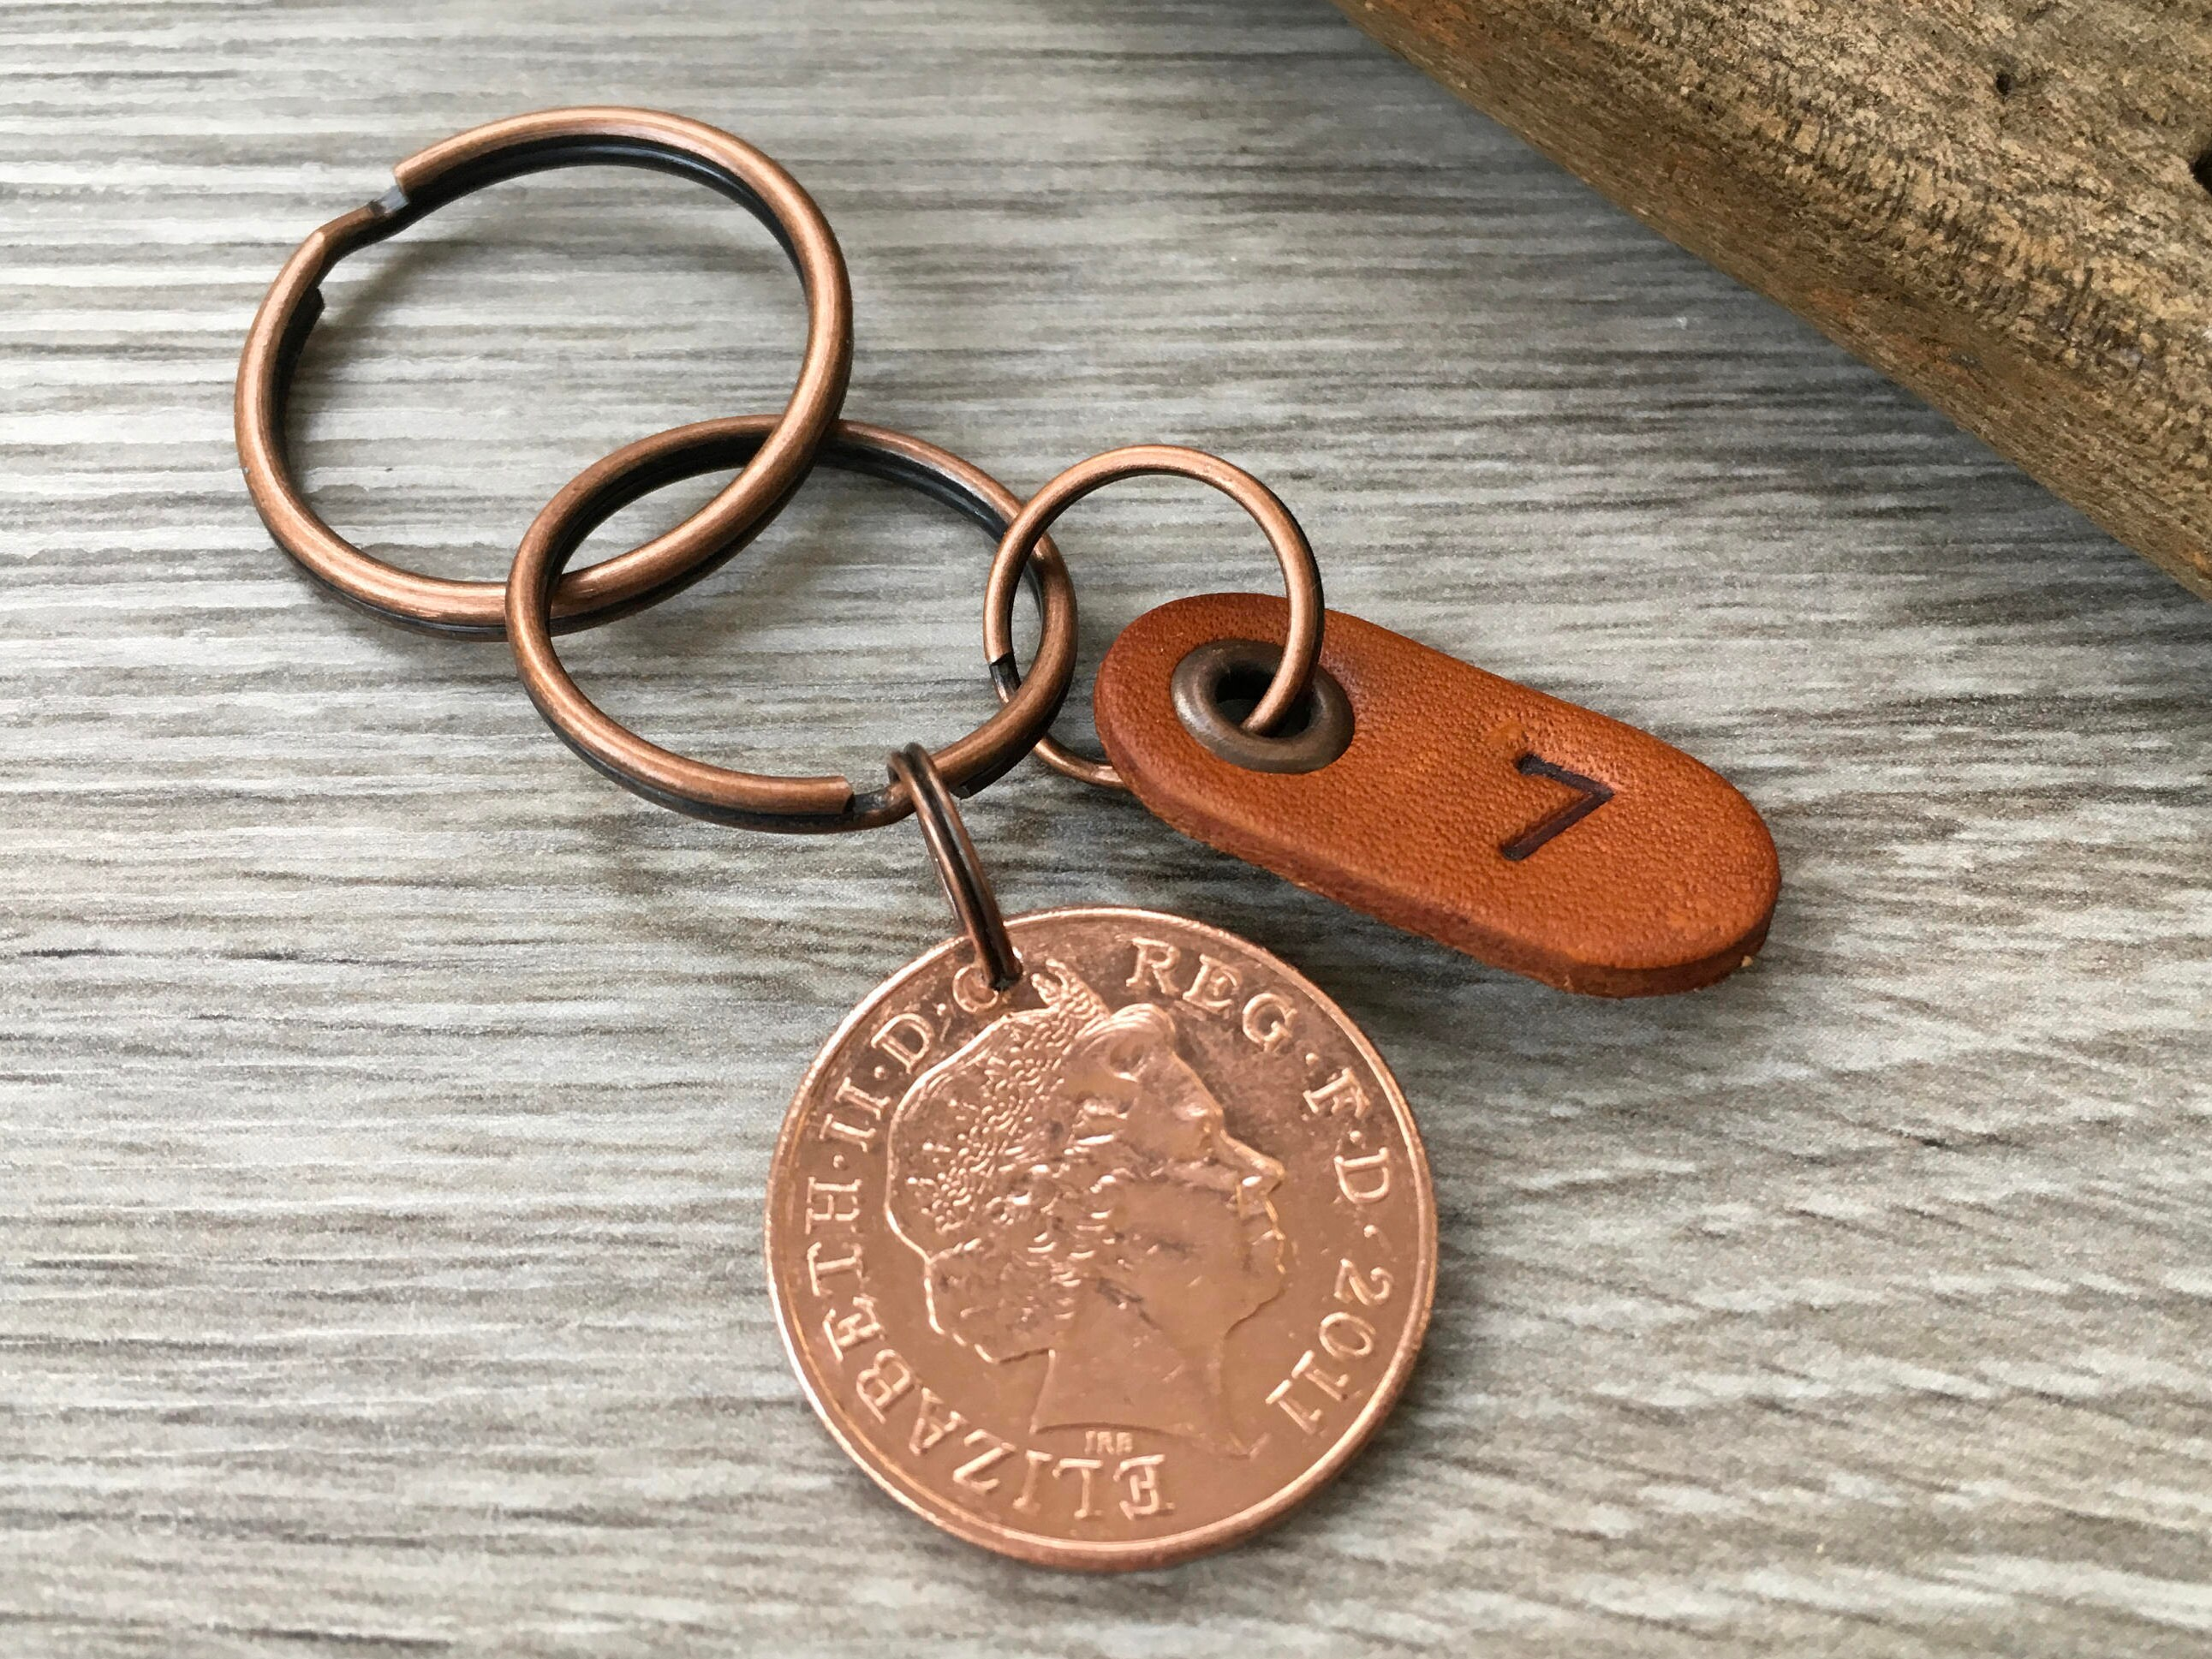 13 Wedding Anniversary Gifts For Him: 7th Anniversary Gift, Copper Wedding Anniversary, Seven 7